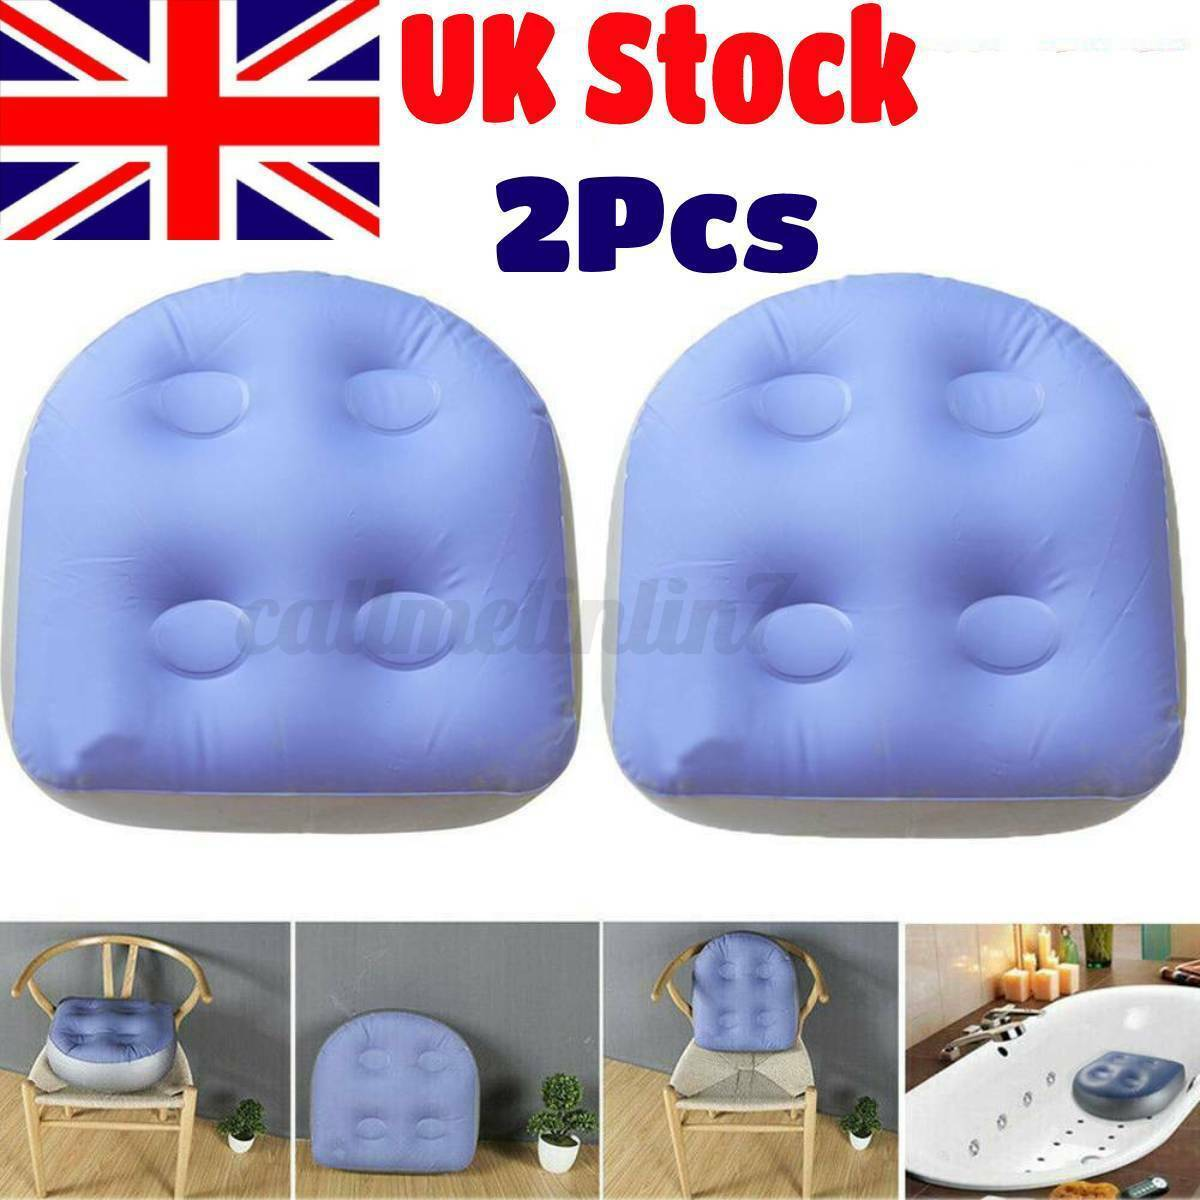 1-2 Pcs Inflatable Booster Seat Spa Hot Tub Lazy Spa Pools Cushion Office